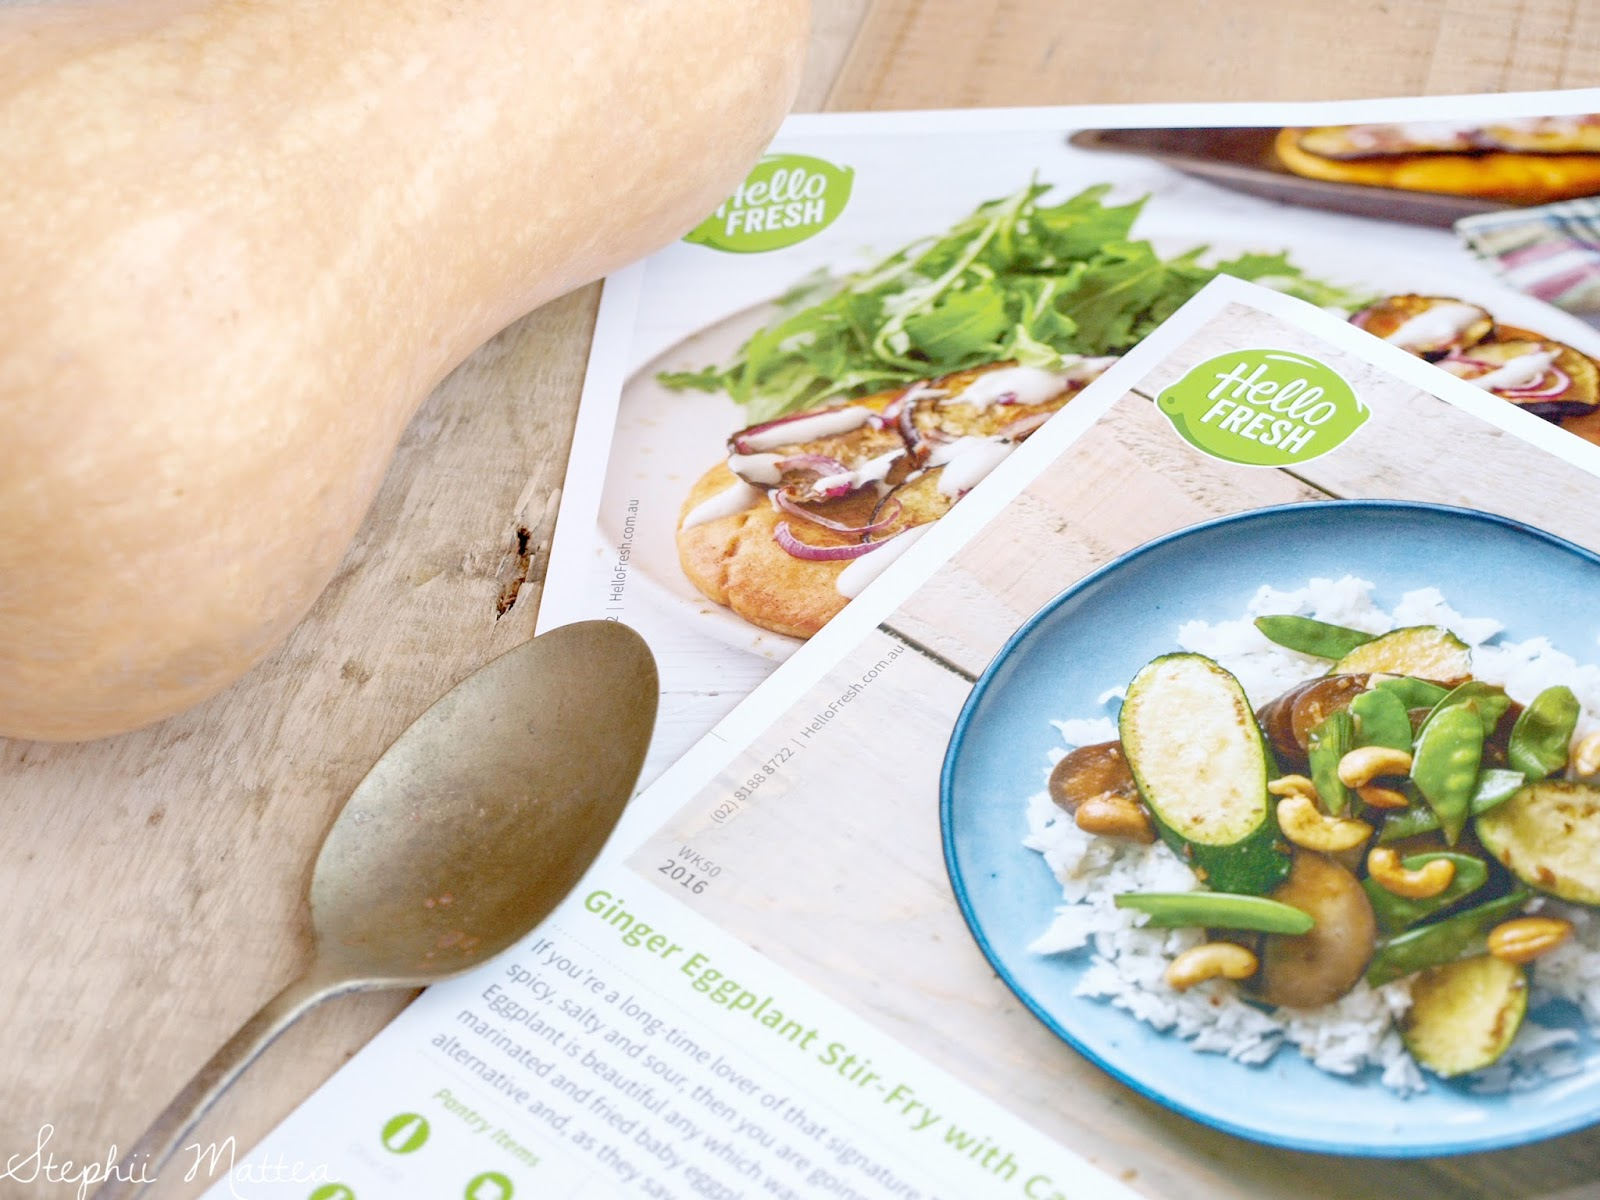 Online Promo Code Hellofresh April 2020